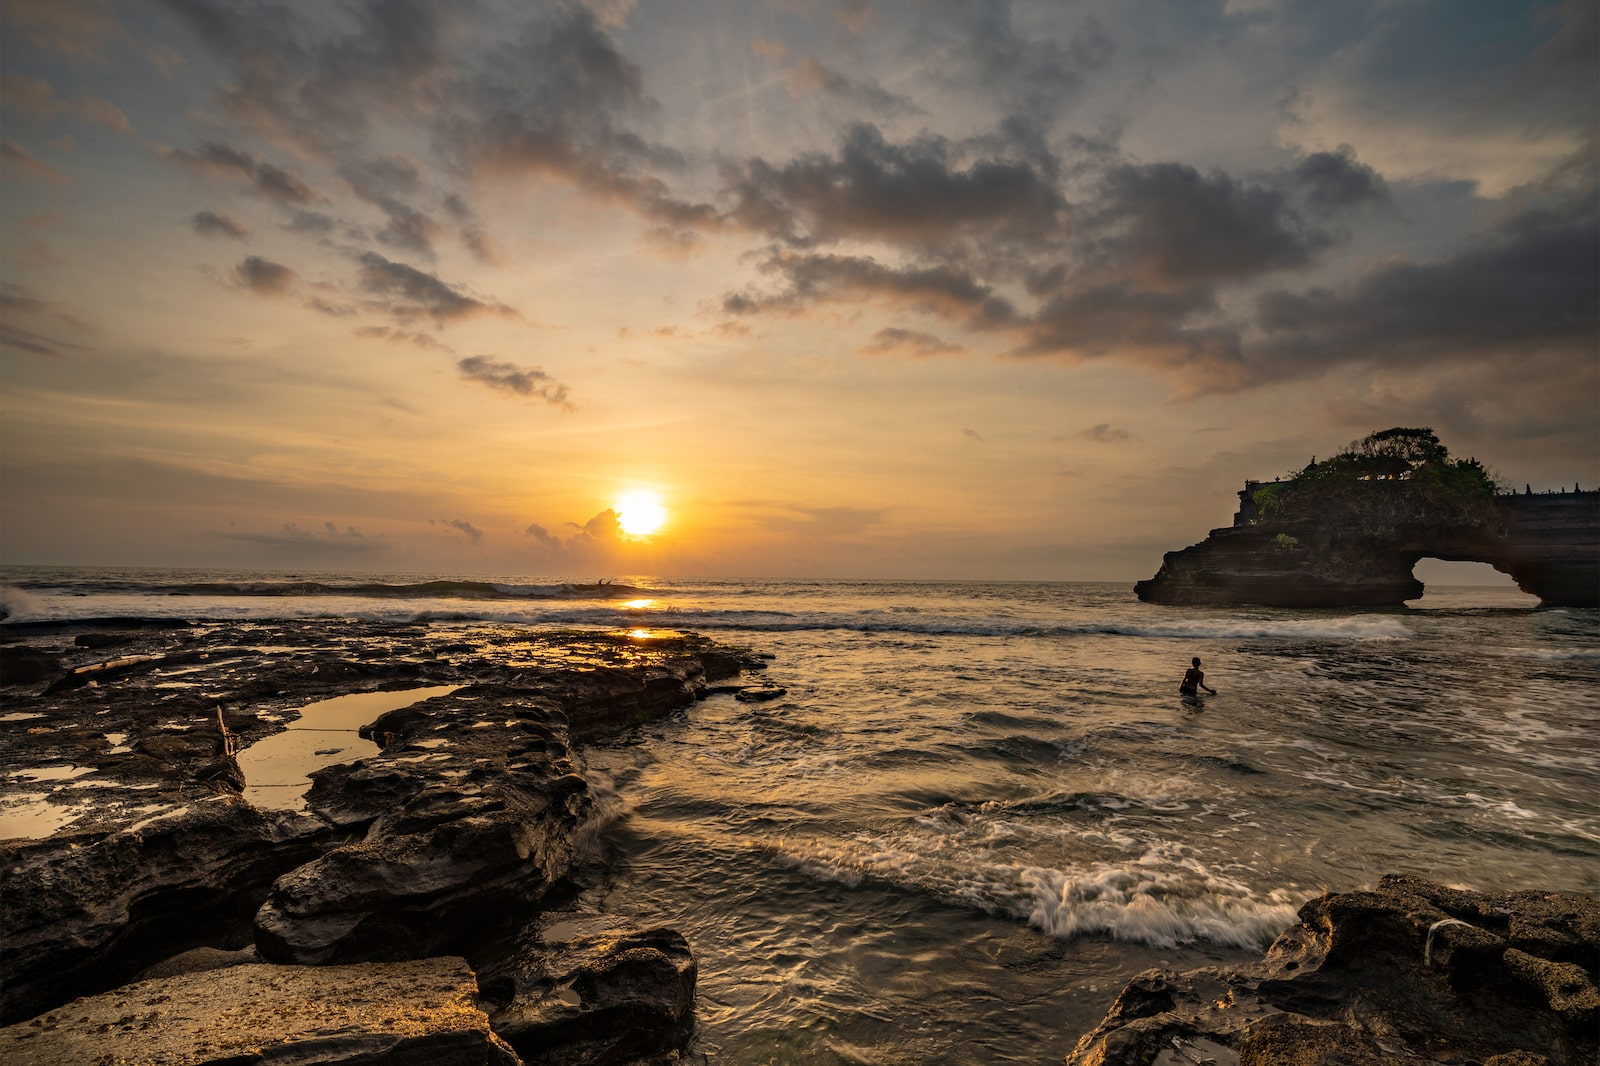 Sunset at sea at Tanah Lot Temple